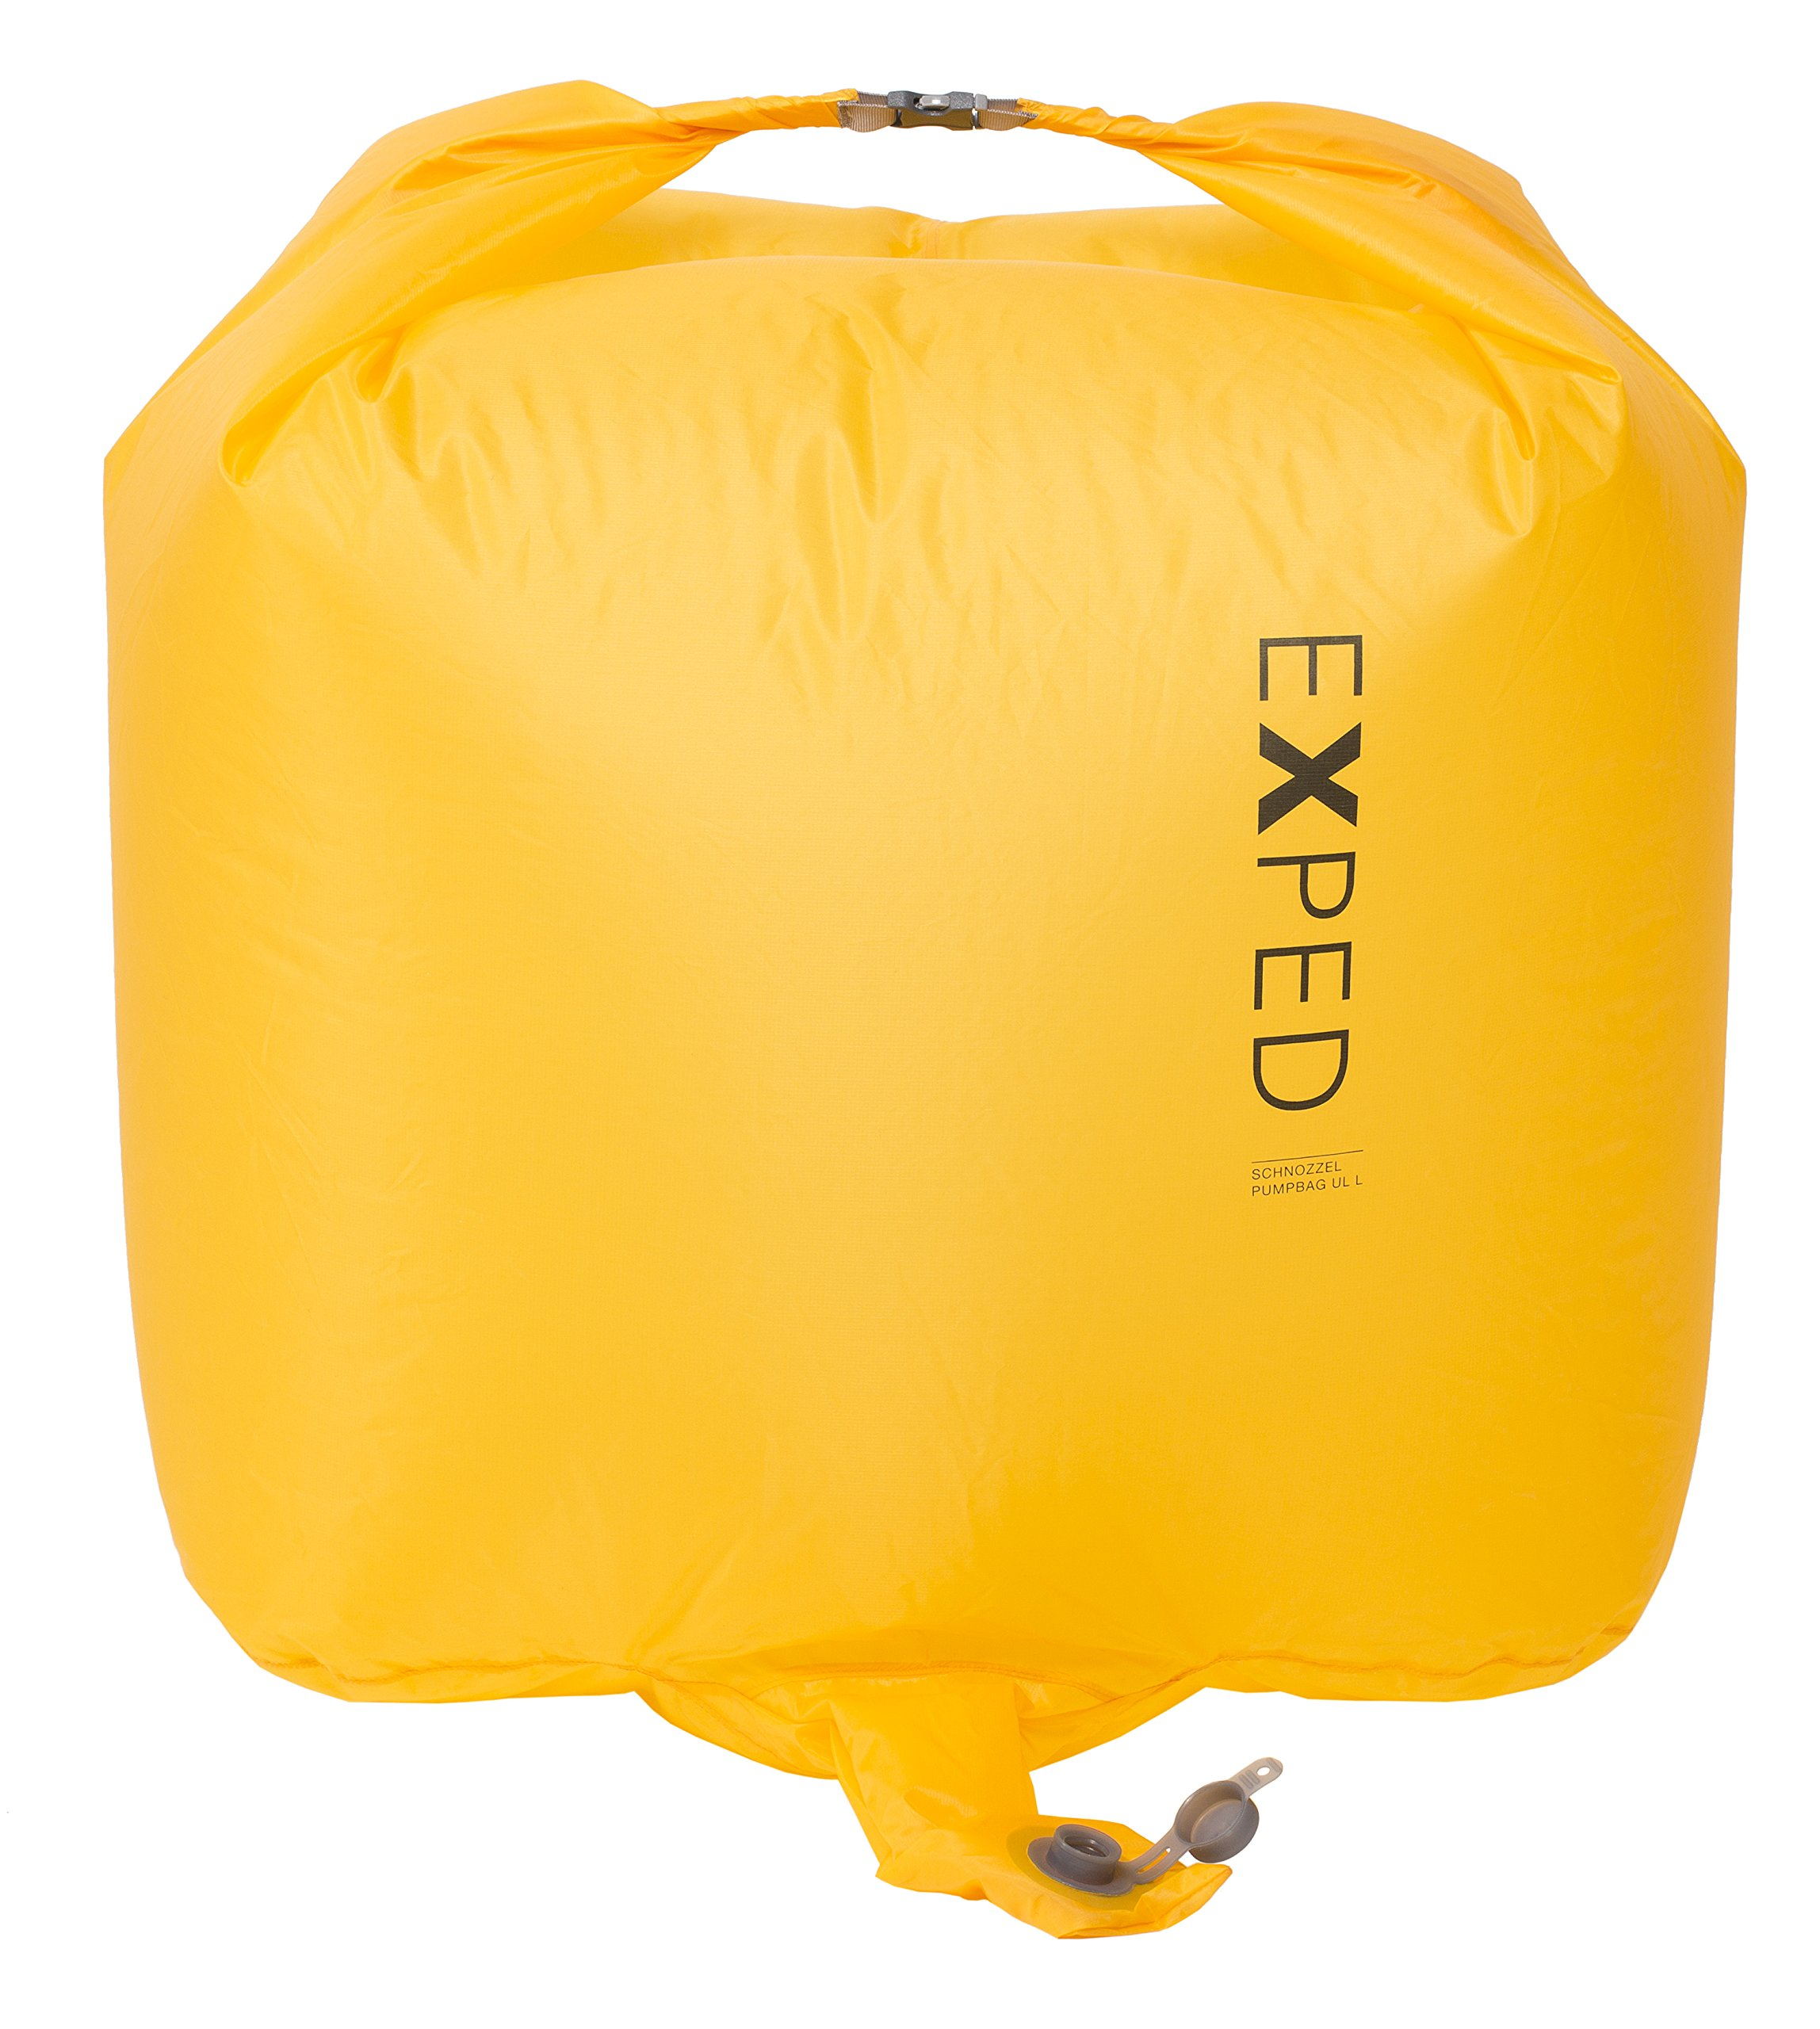 Exped Schnozzel Pumpbag UL by Exped